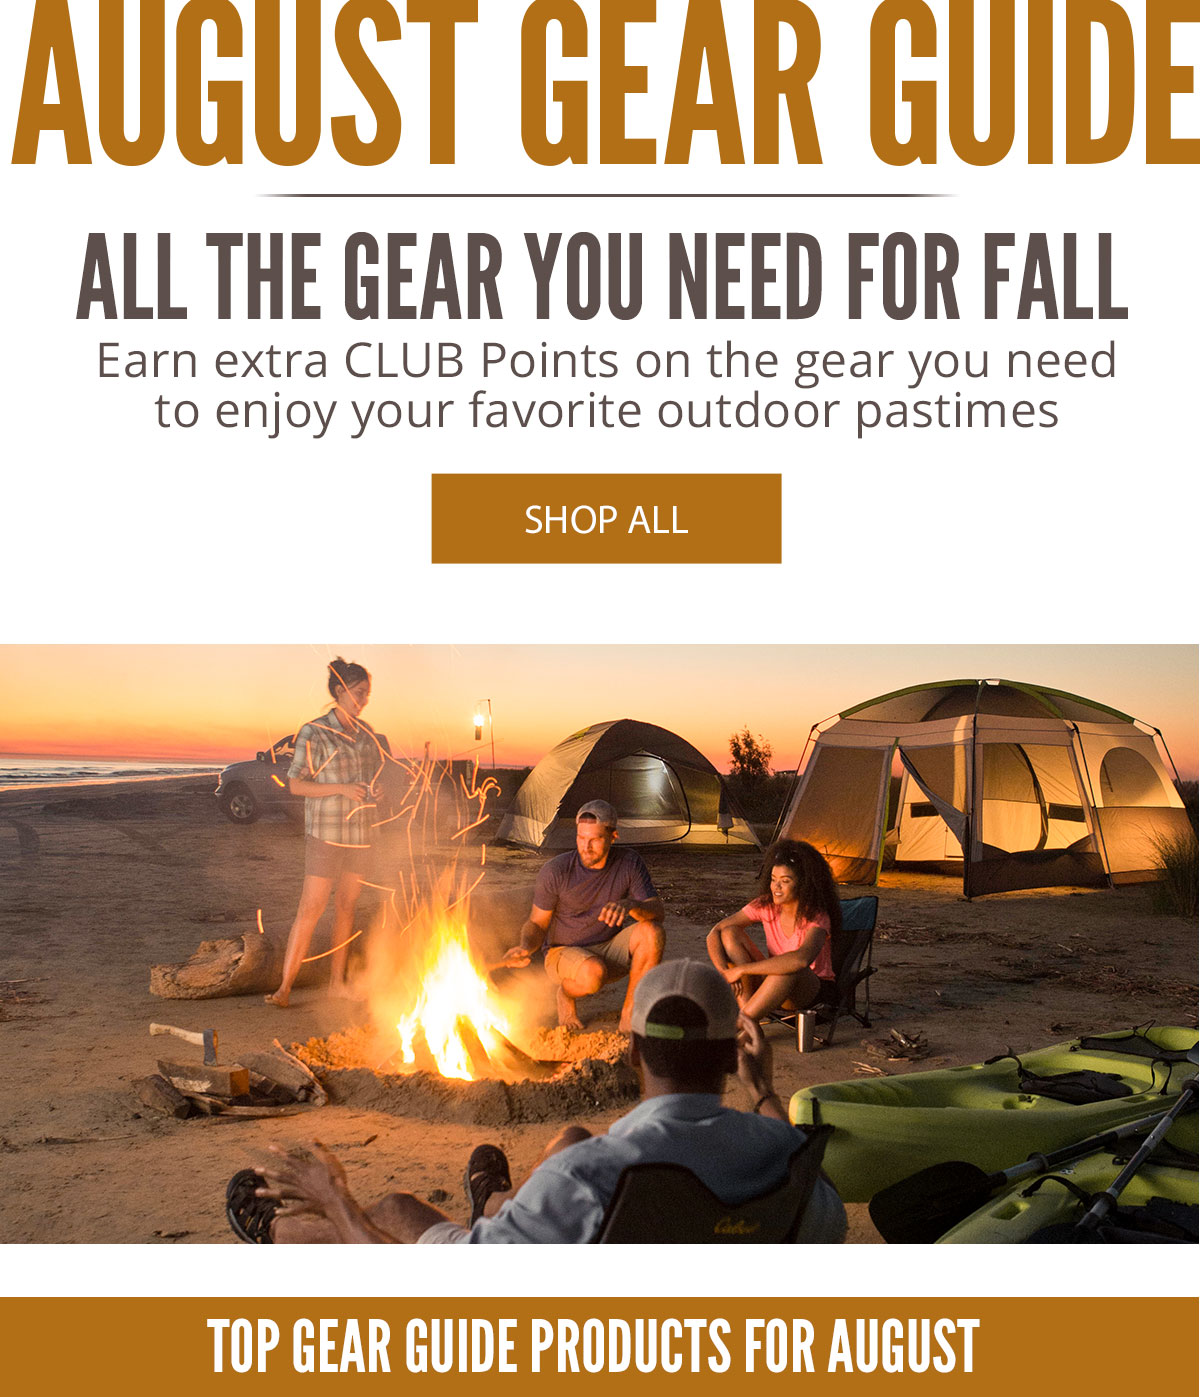 August Gear Guide - Check out all the great deals in this month's gear guide